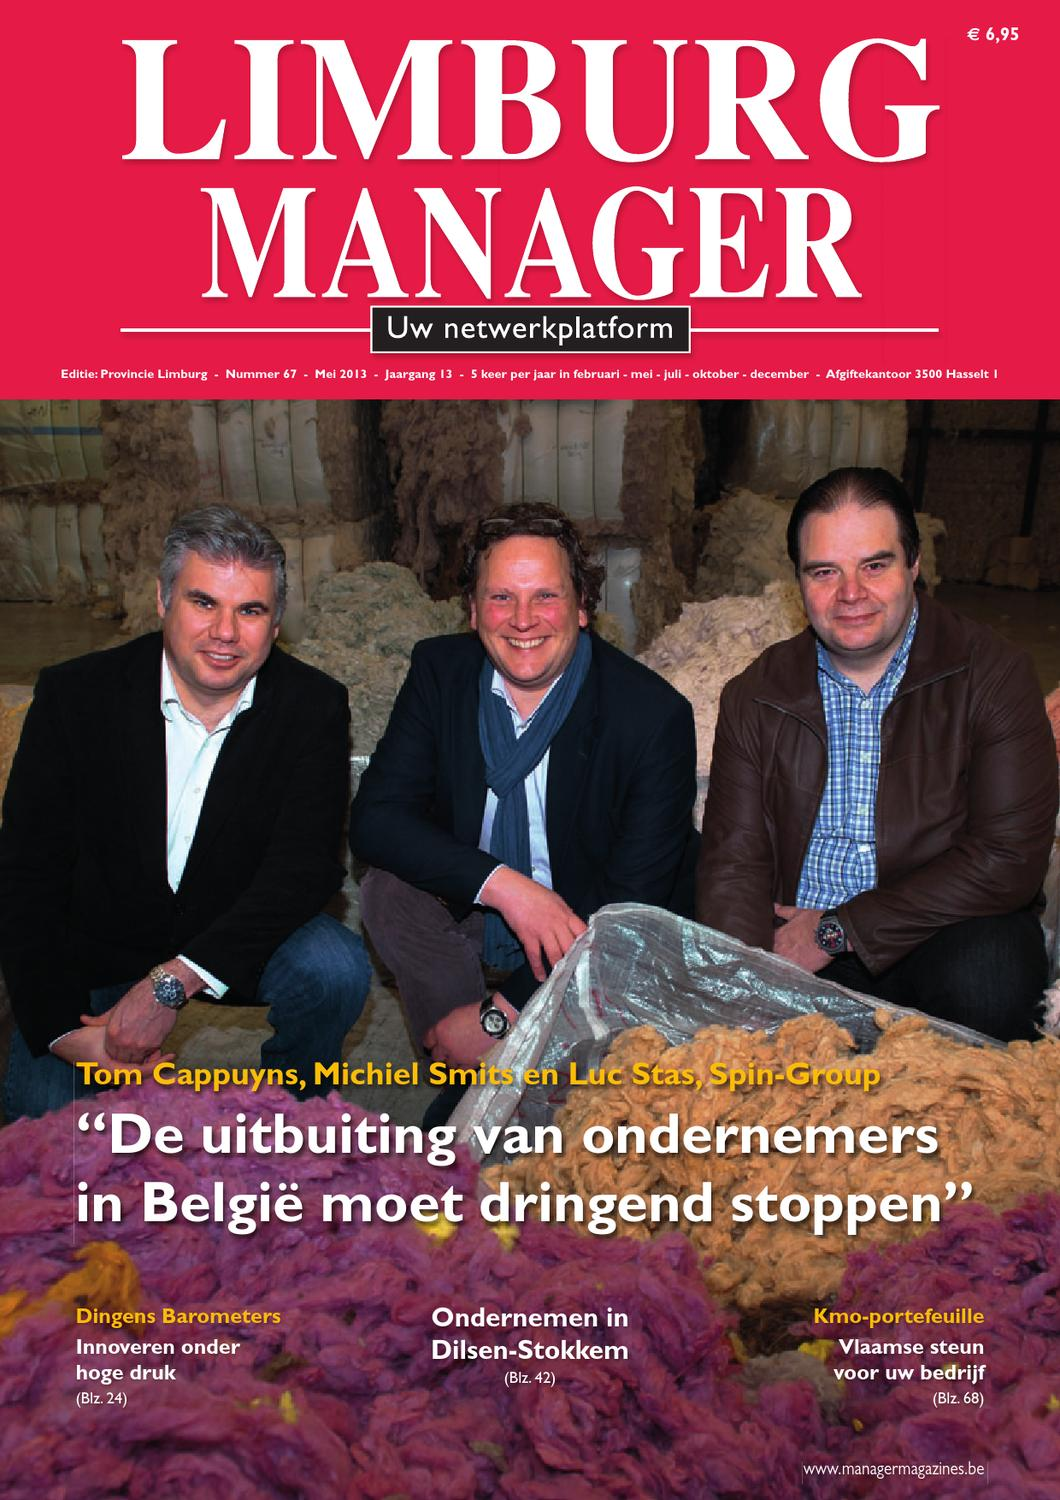 Brabant manager 36 by Manager Magazines - issuu